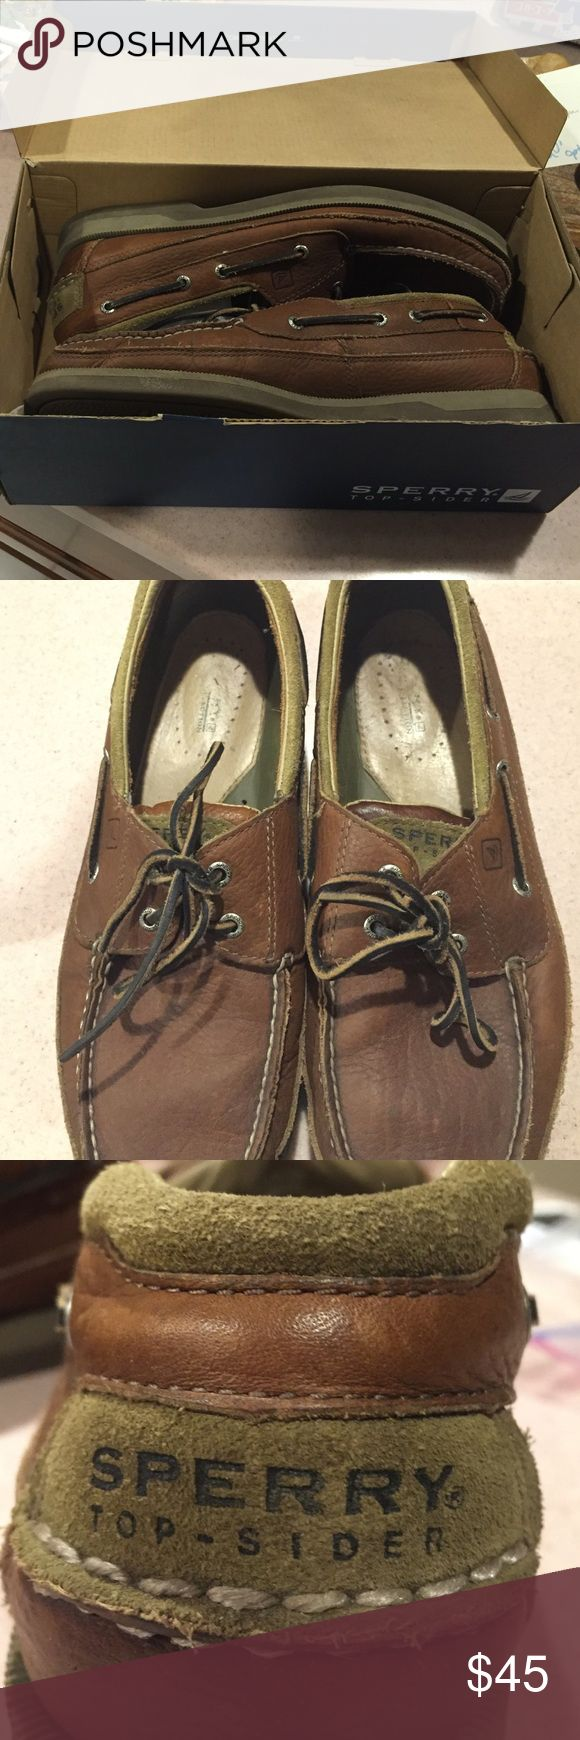 Sperry Top Sider Boat Shoes Sperry Top Sider size 12 men's boat shoes. Worn a few occasions as illustrated in pictures. Feel free to inquire for any clarification! Sperry Top-Sider Shoes Boat Shoes